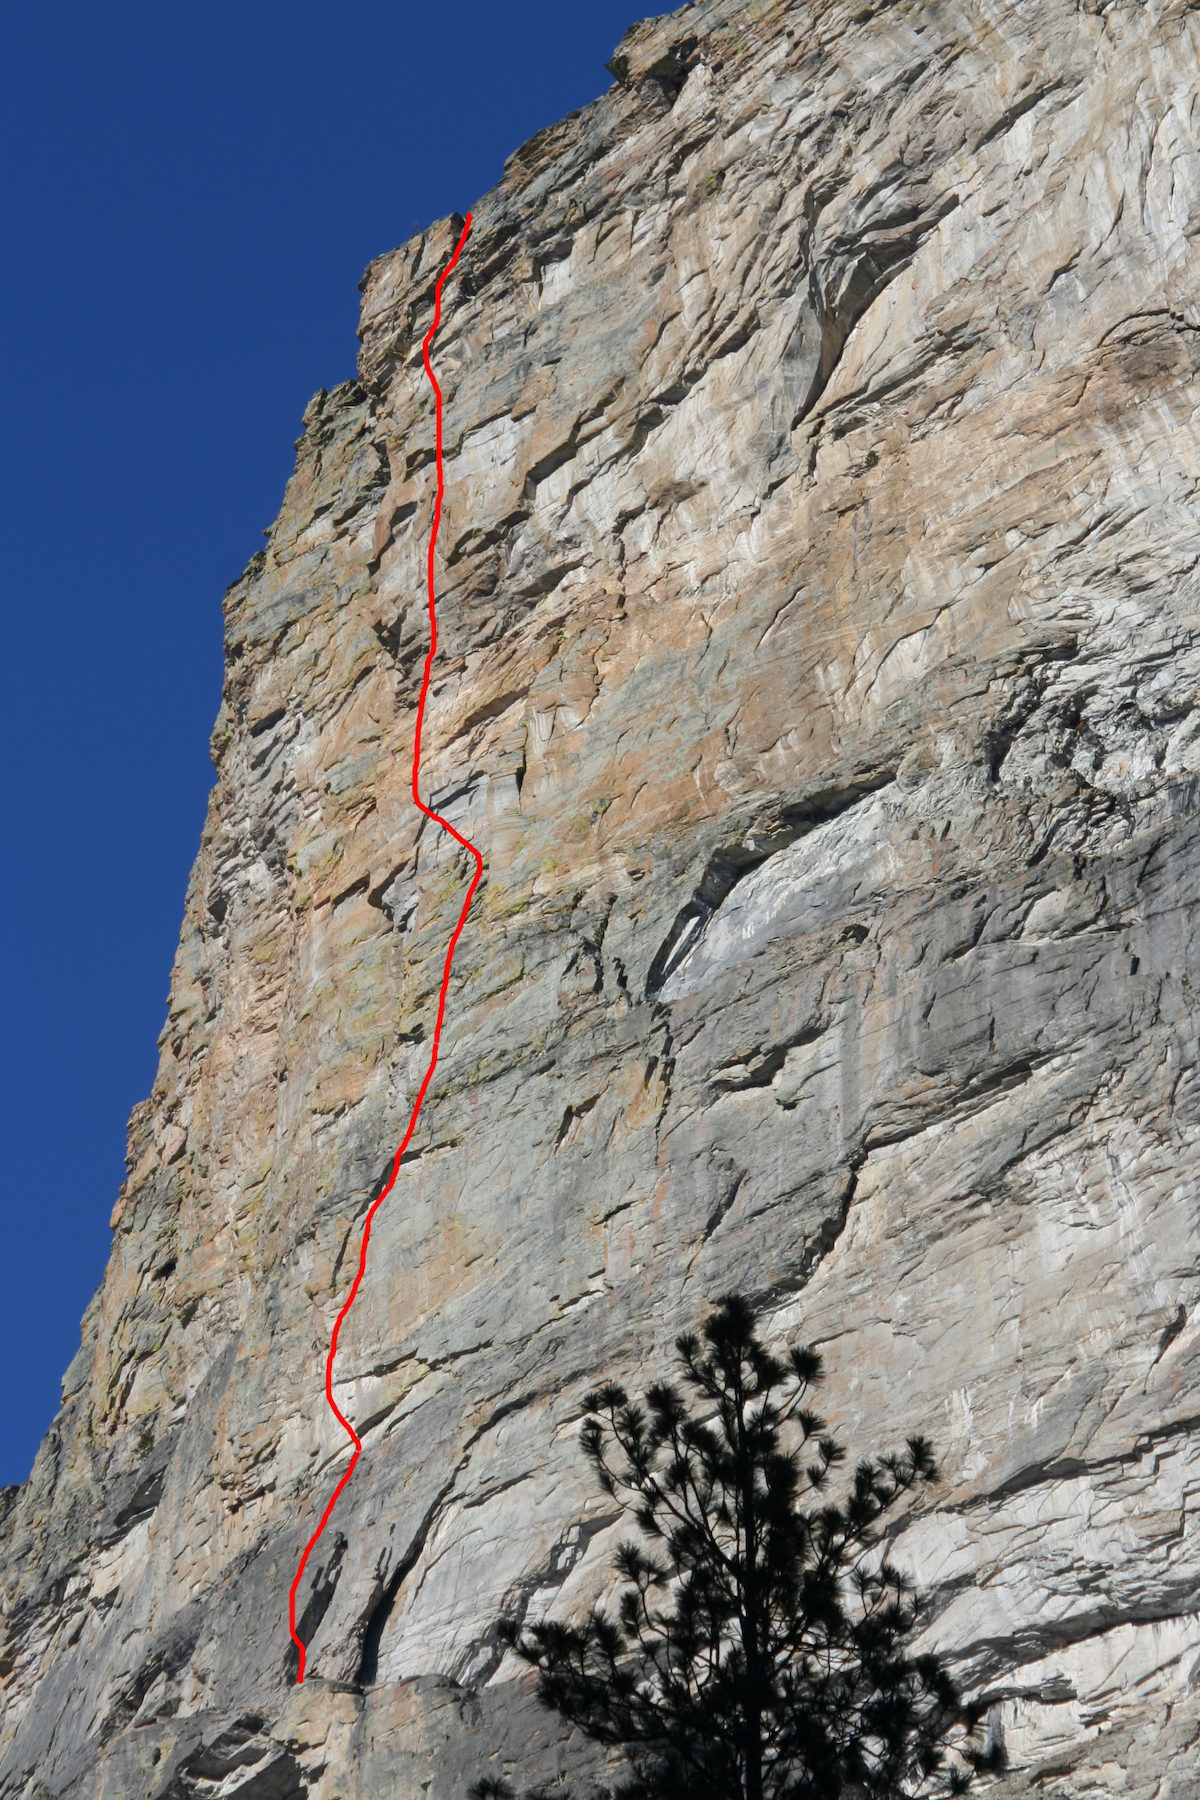 The red line shows the route of Super Ultra Mega (5.13a, 8 pitches). [Photo] Winter Ramos